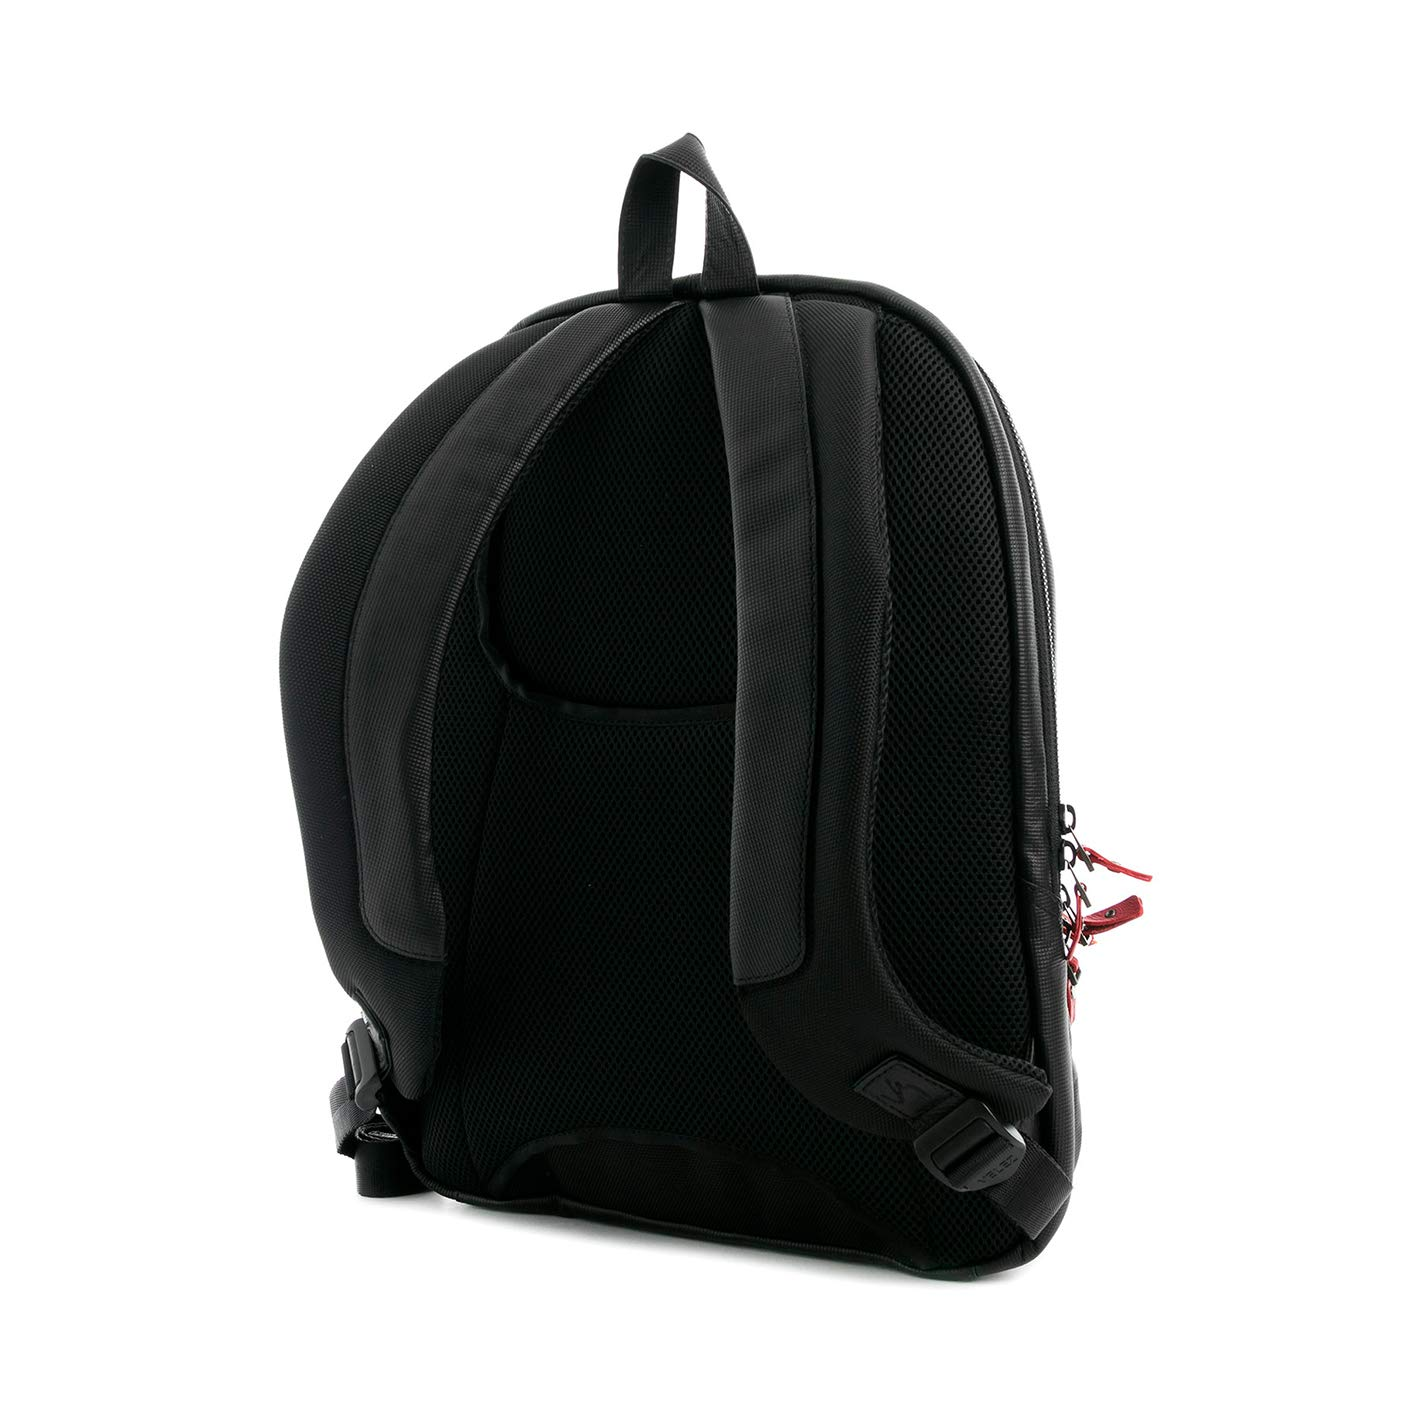 476419fad Amazon.com: Velez Colombian Mens Genuine Leather Backpack Bolsos Hombres  Cuero Colombiano Black: